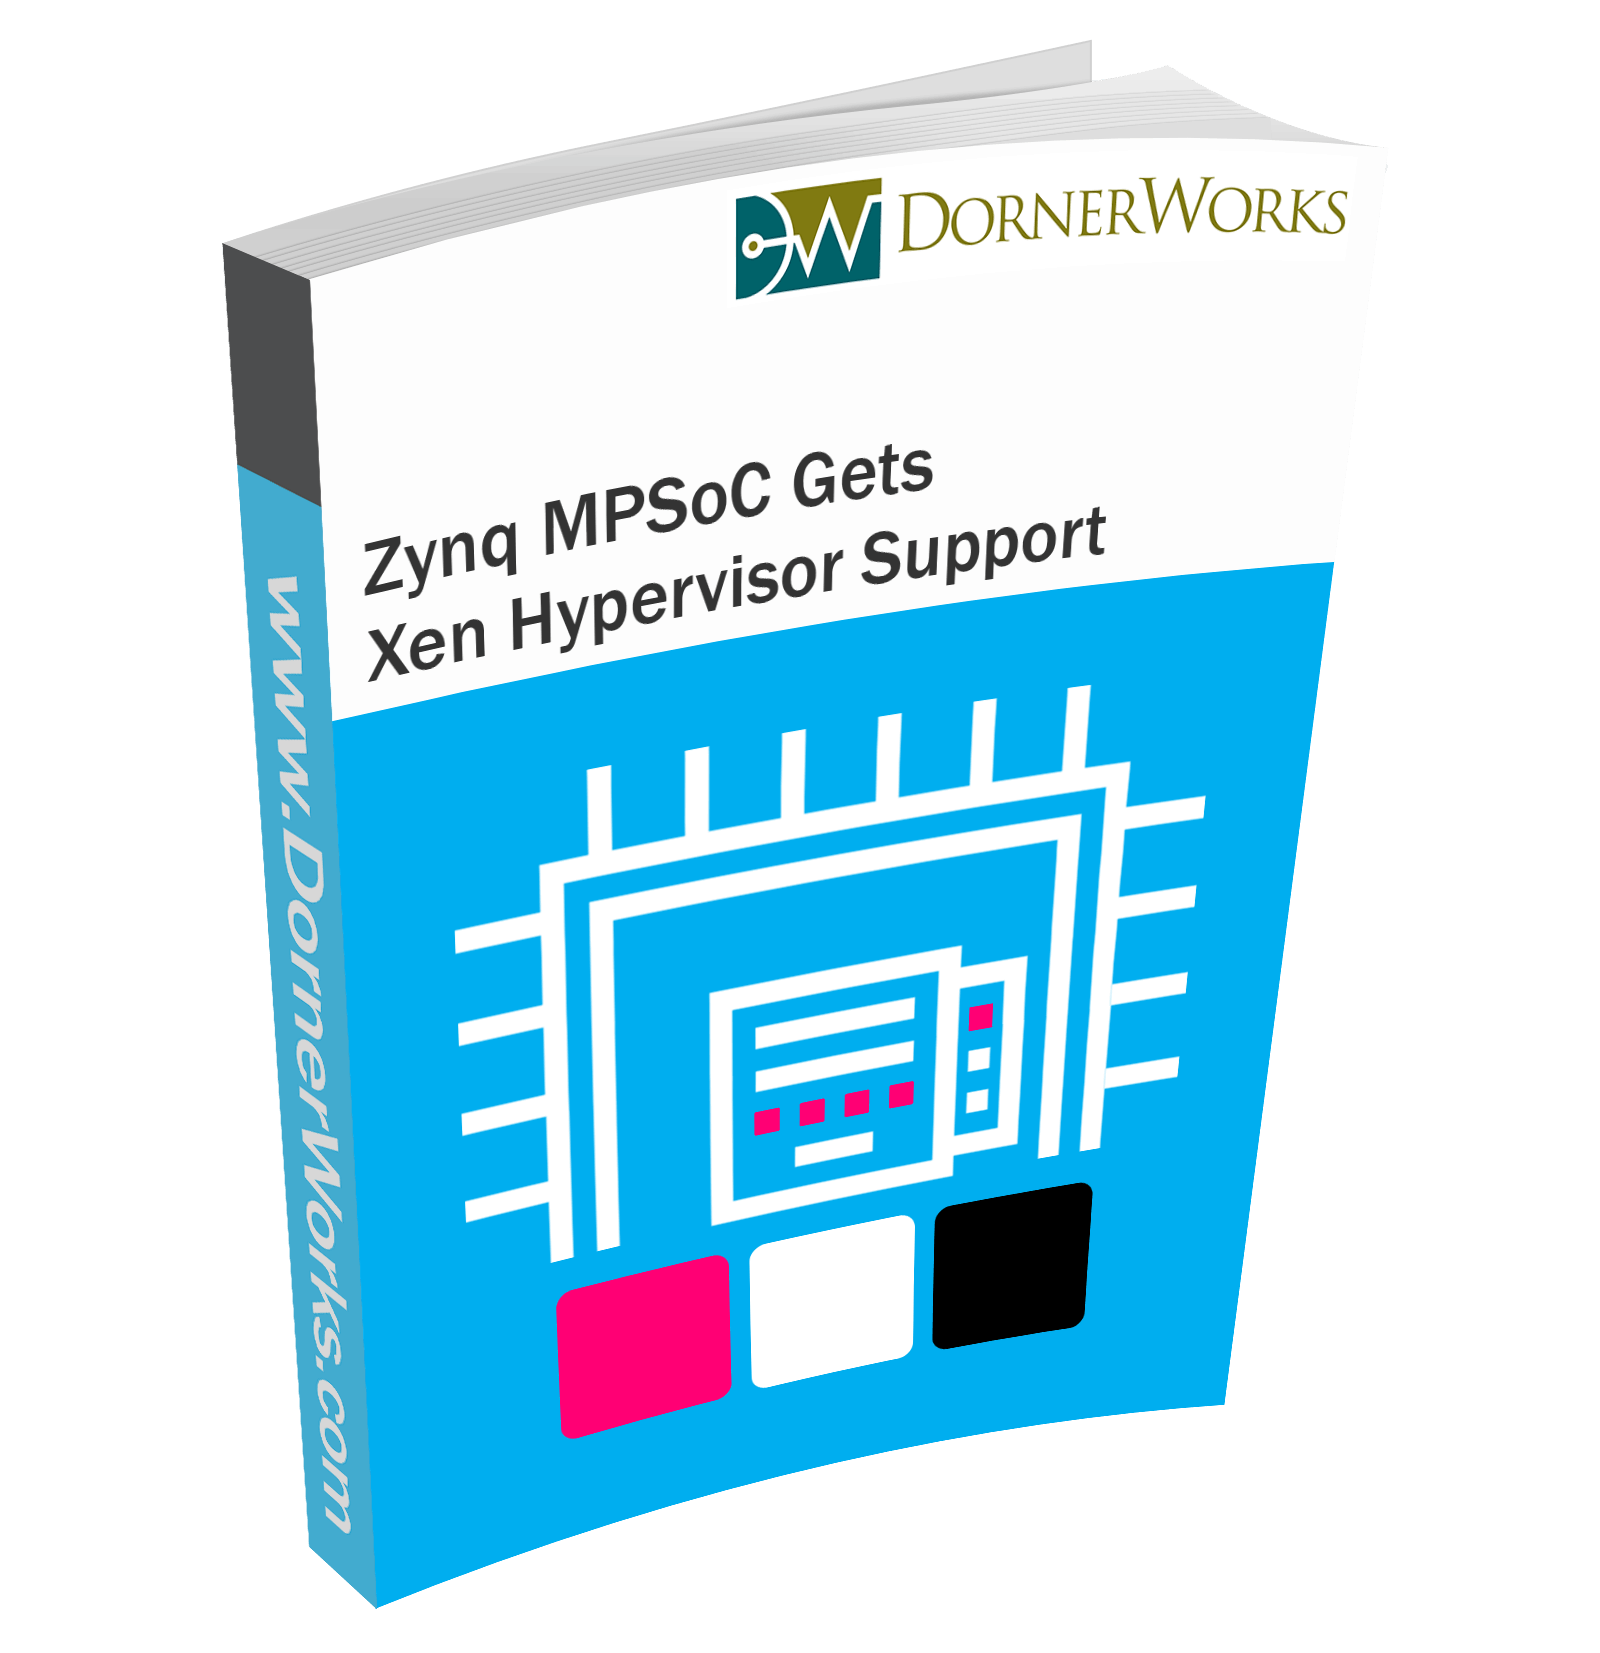 Achieve Safety and Security With Xen Hypervisor Support for Xilinx Zynq MPSoC